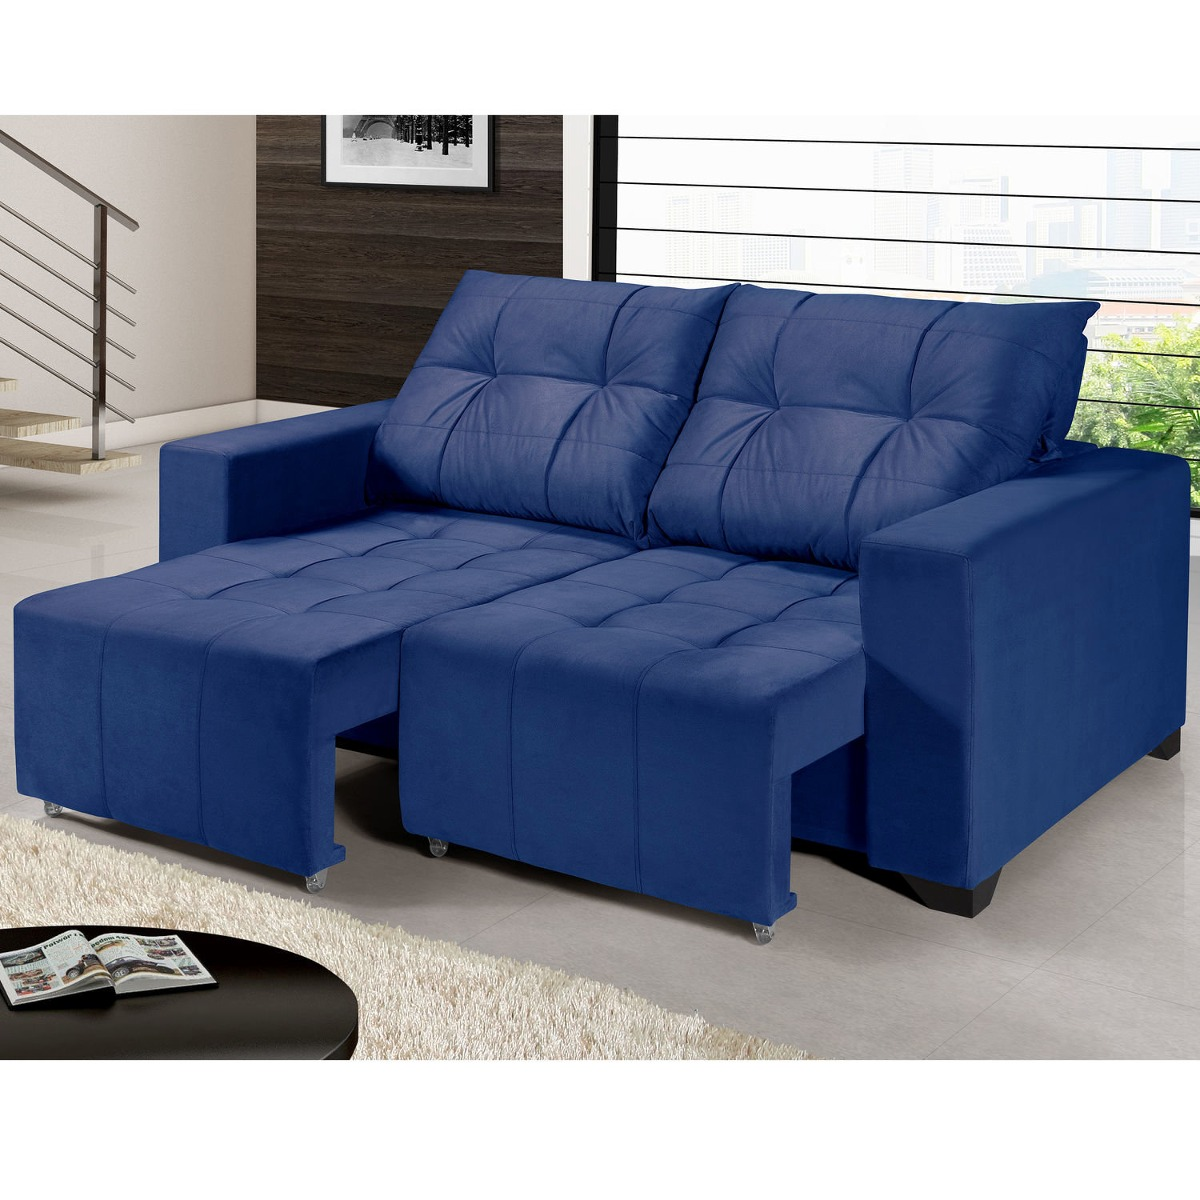 Sofa De 2 Lugares Retratil Usado Sofa Retratil Usado Df Sofa Ideas